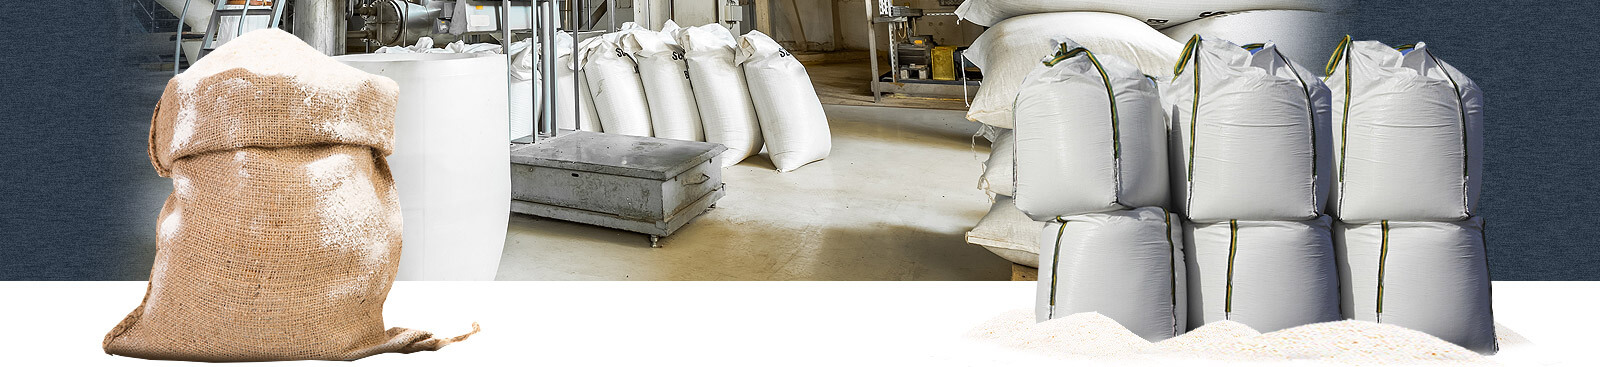 Leak Proof Bulk Bags for Sale